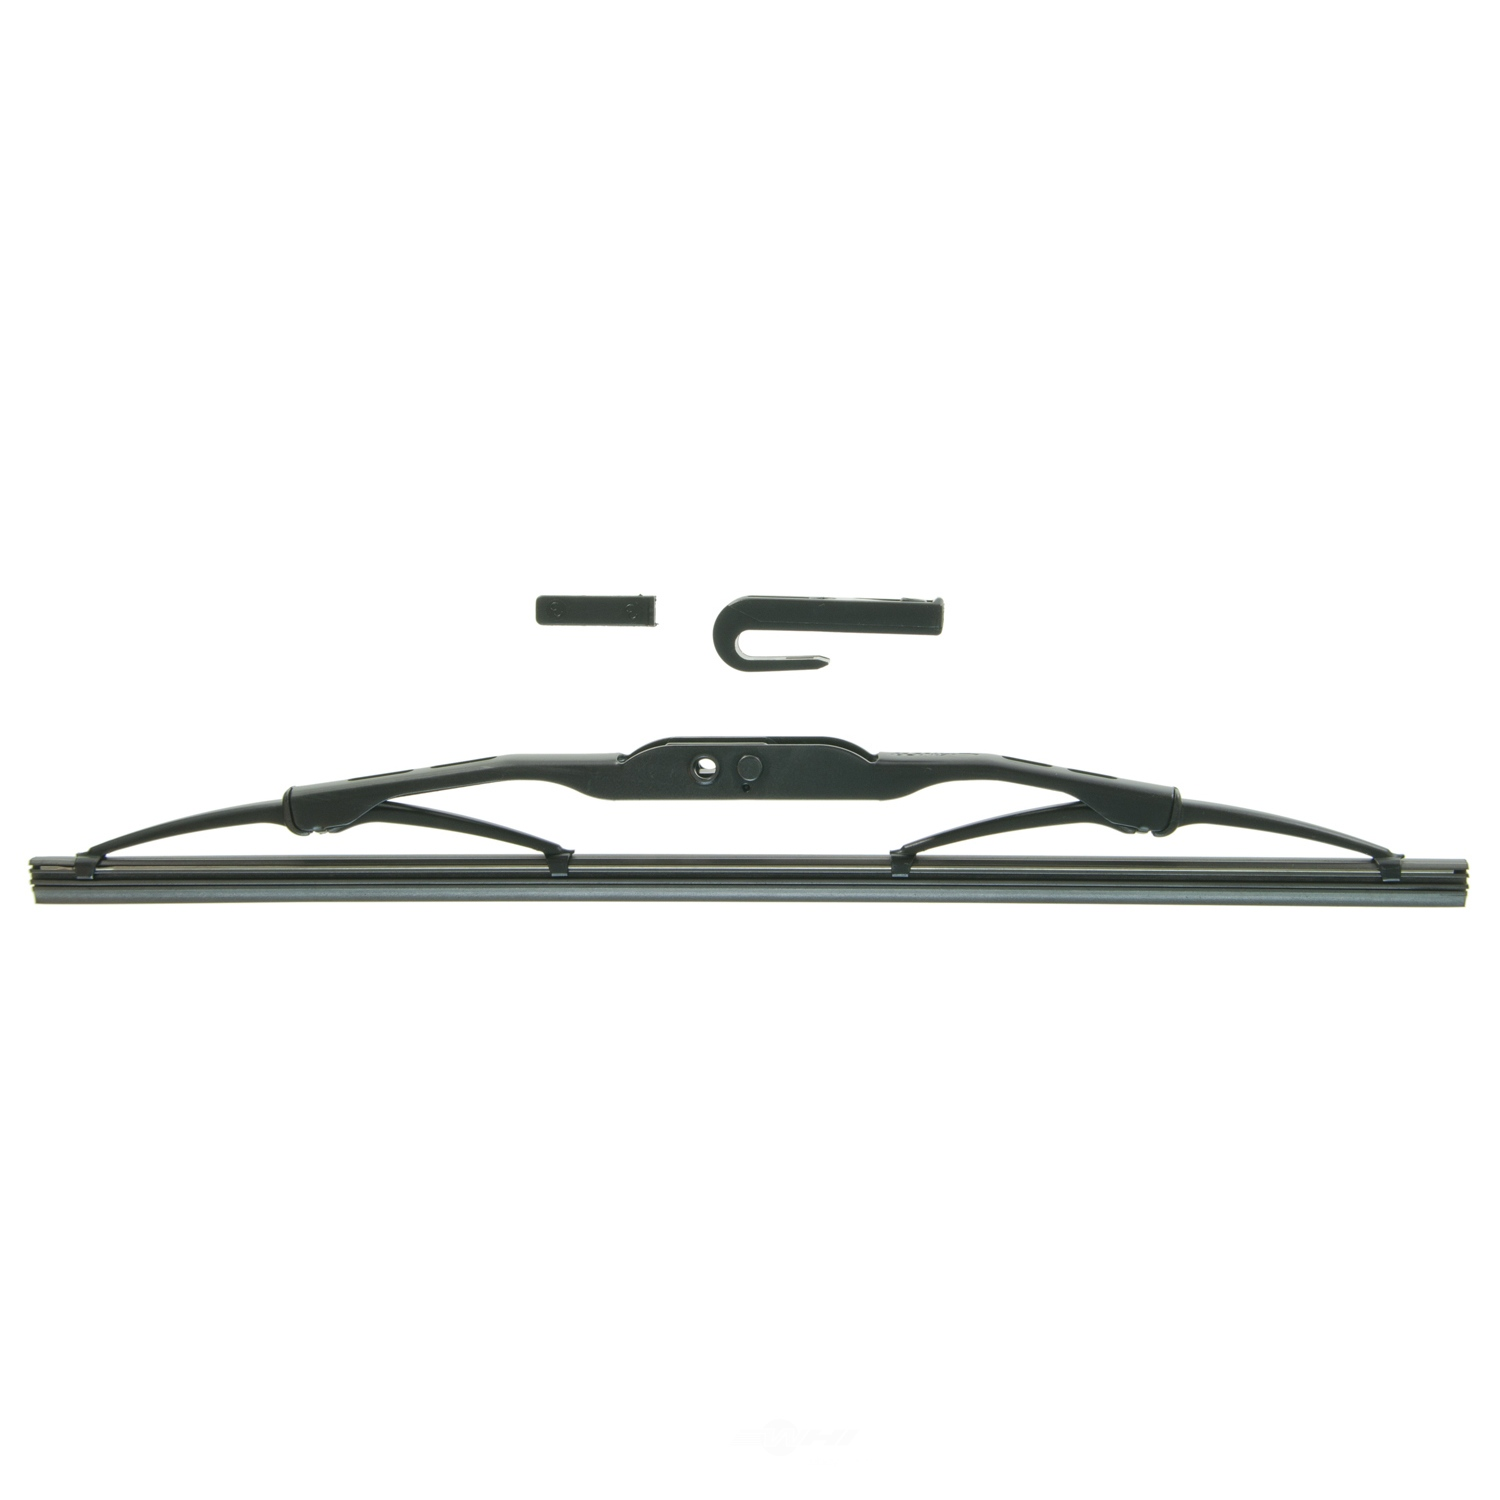 ANCO WIPER PRODUCTS - 31-Series Wiper Blade - ANC 31-13